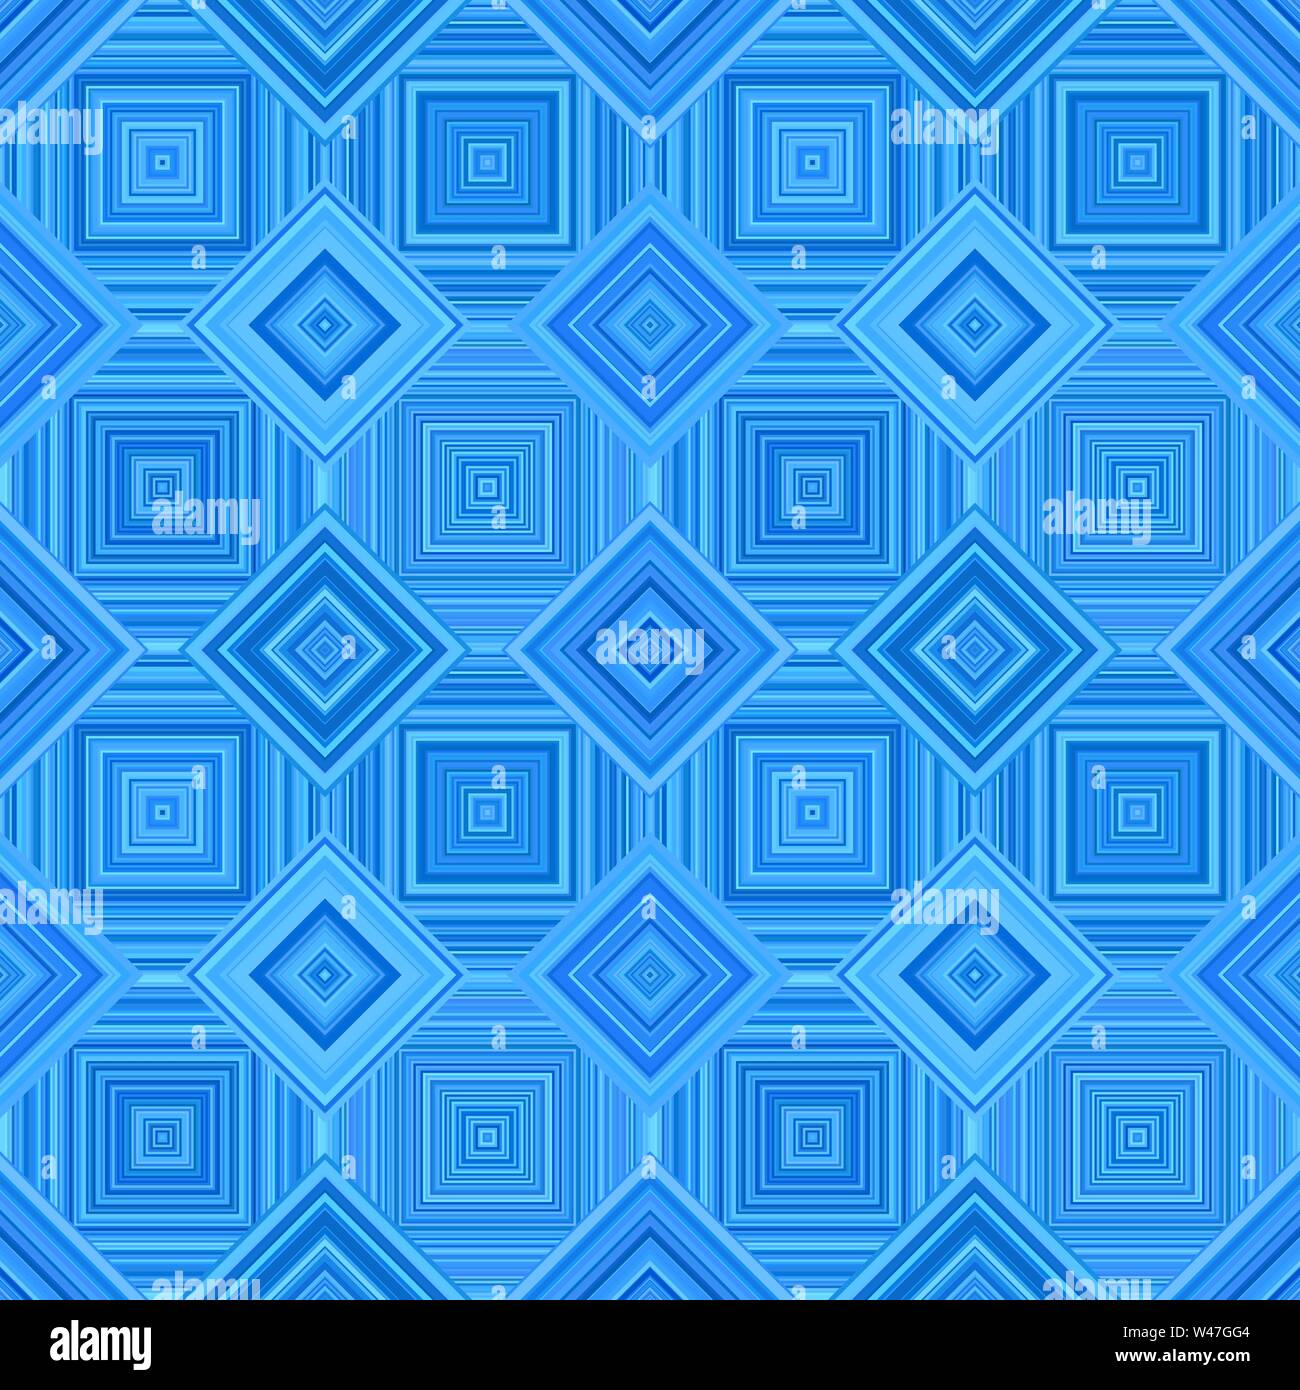 Blue abstract geometric diagonal square mosaic tile pattern background - repeatable graphic design Stock Vector